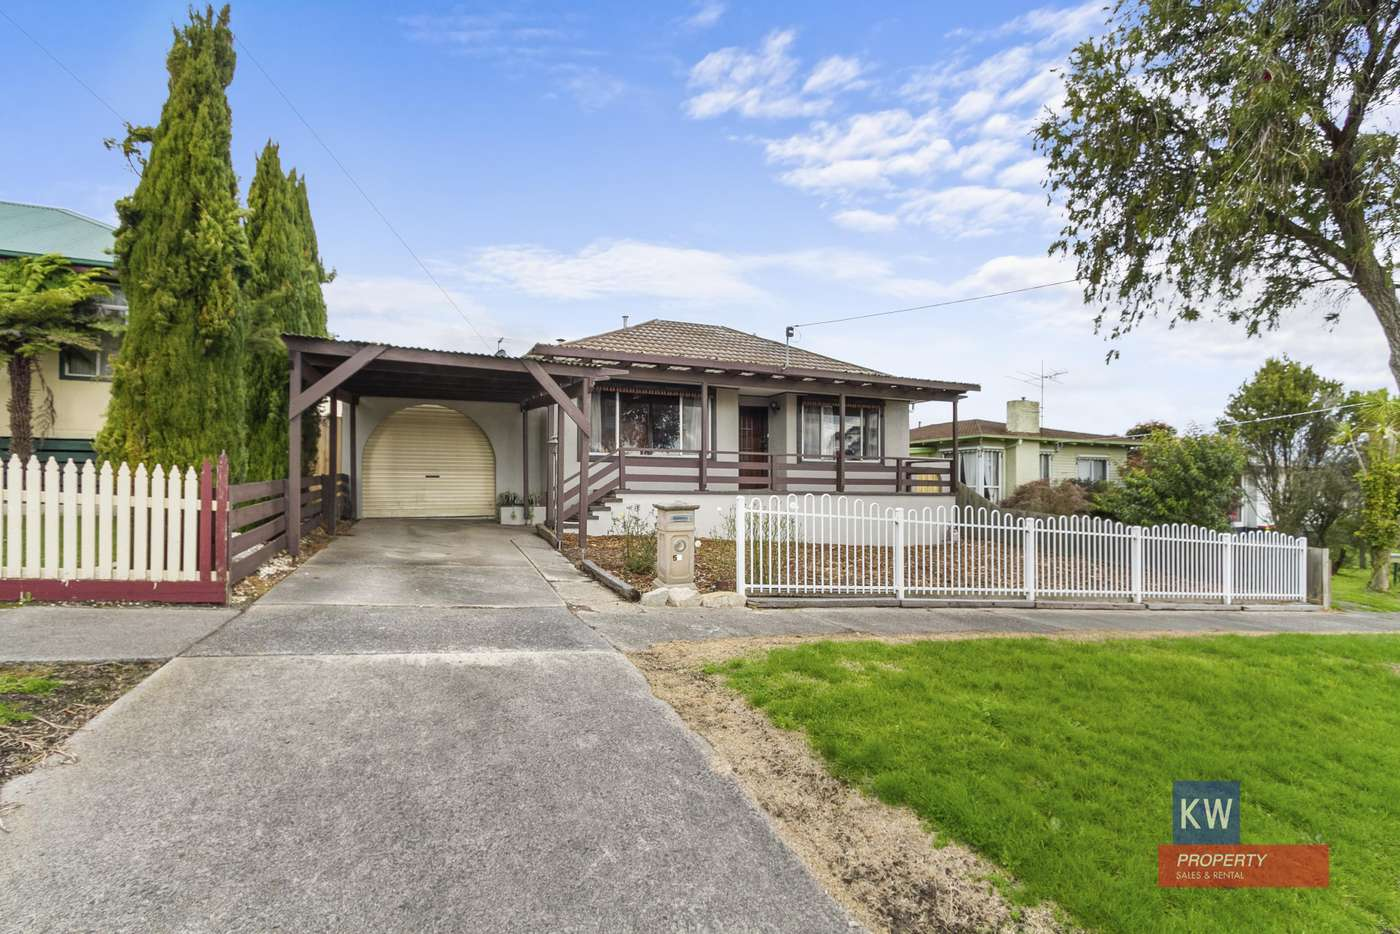 Main view of Homely house listing, 50 Vincent Rd, Morwell VIC 3840